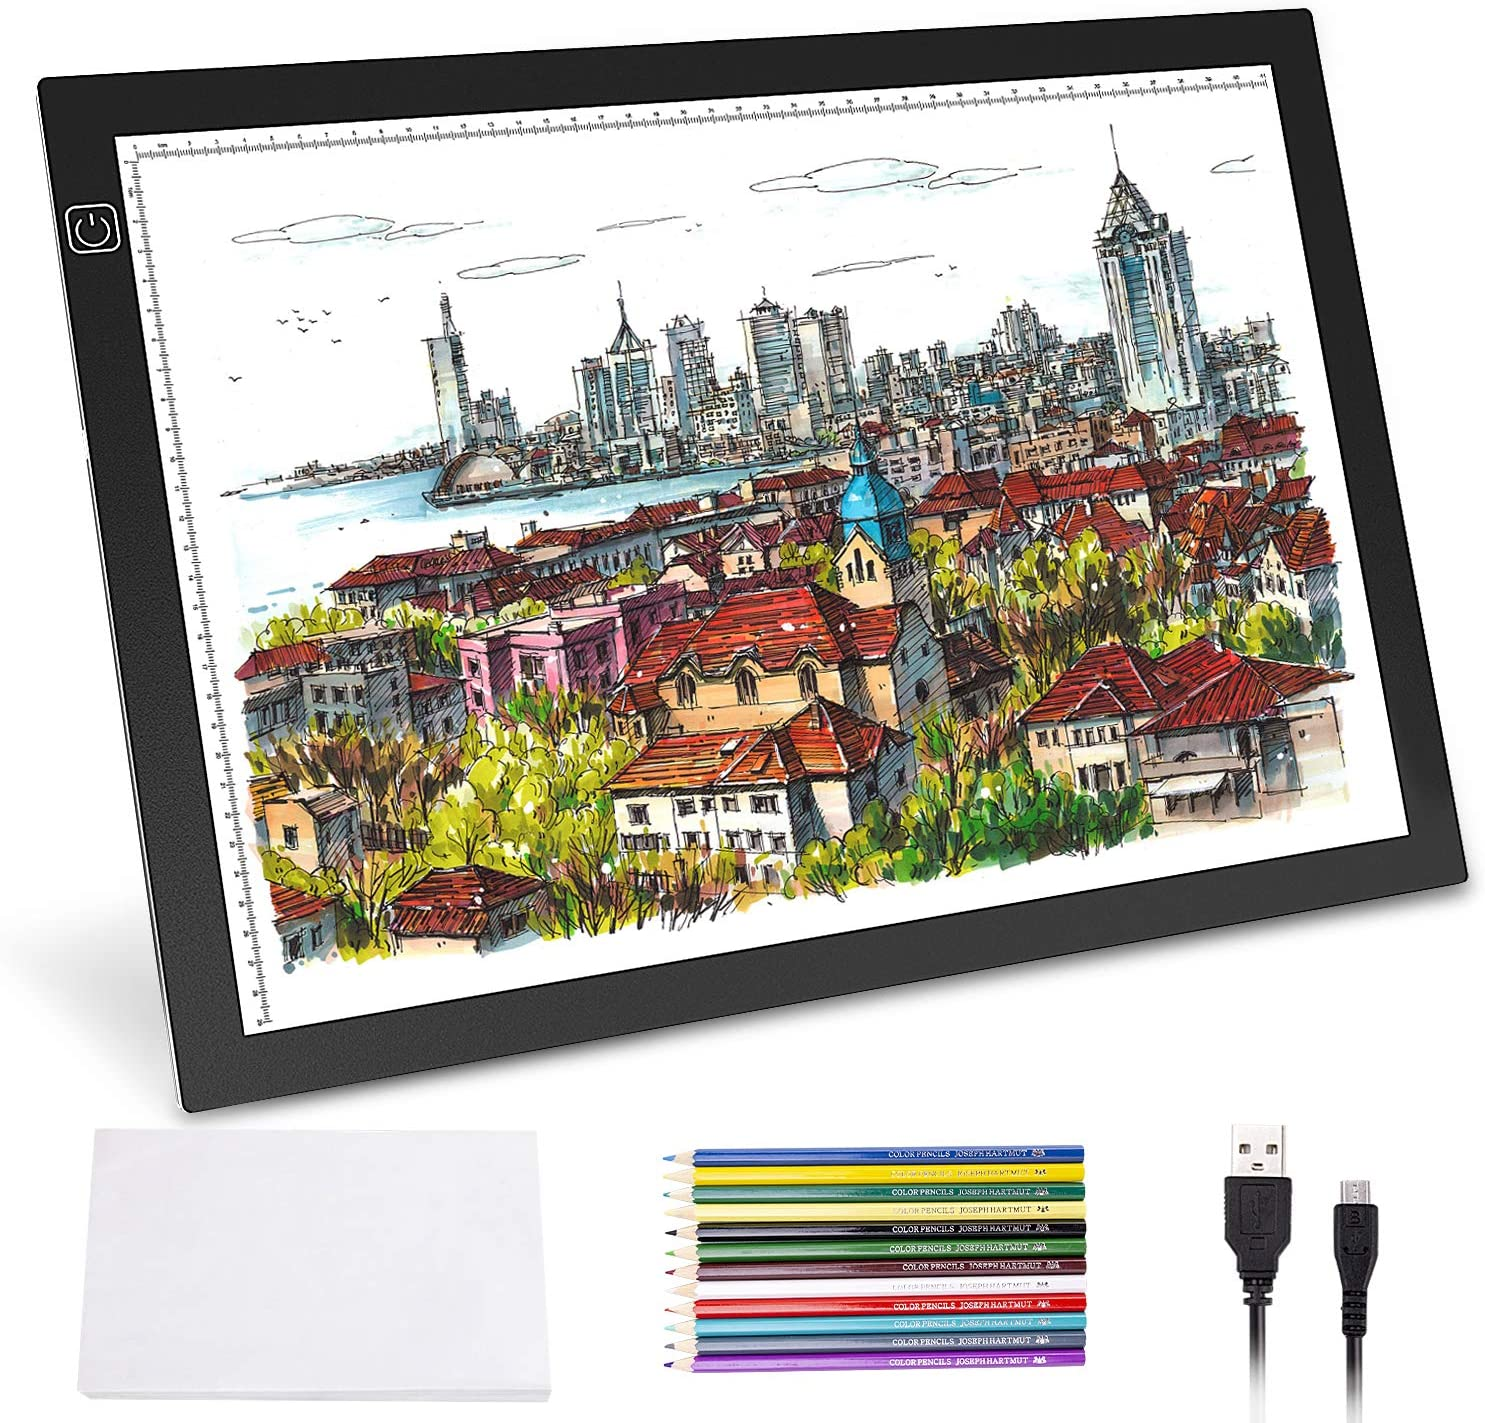 Animation Adjustable USB Power Light Box Tracer for Drawing Sketching Norbase Ultra-Thin Portable Tracing LED Copy Board Christmas Gift Stenciling A3 Light Pad Calligraphy with 12 Color Pencils